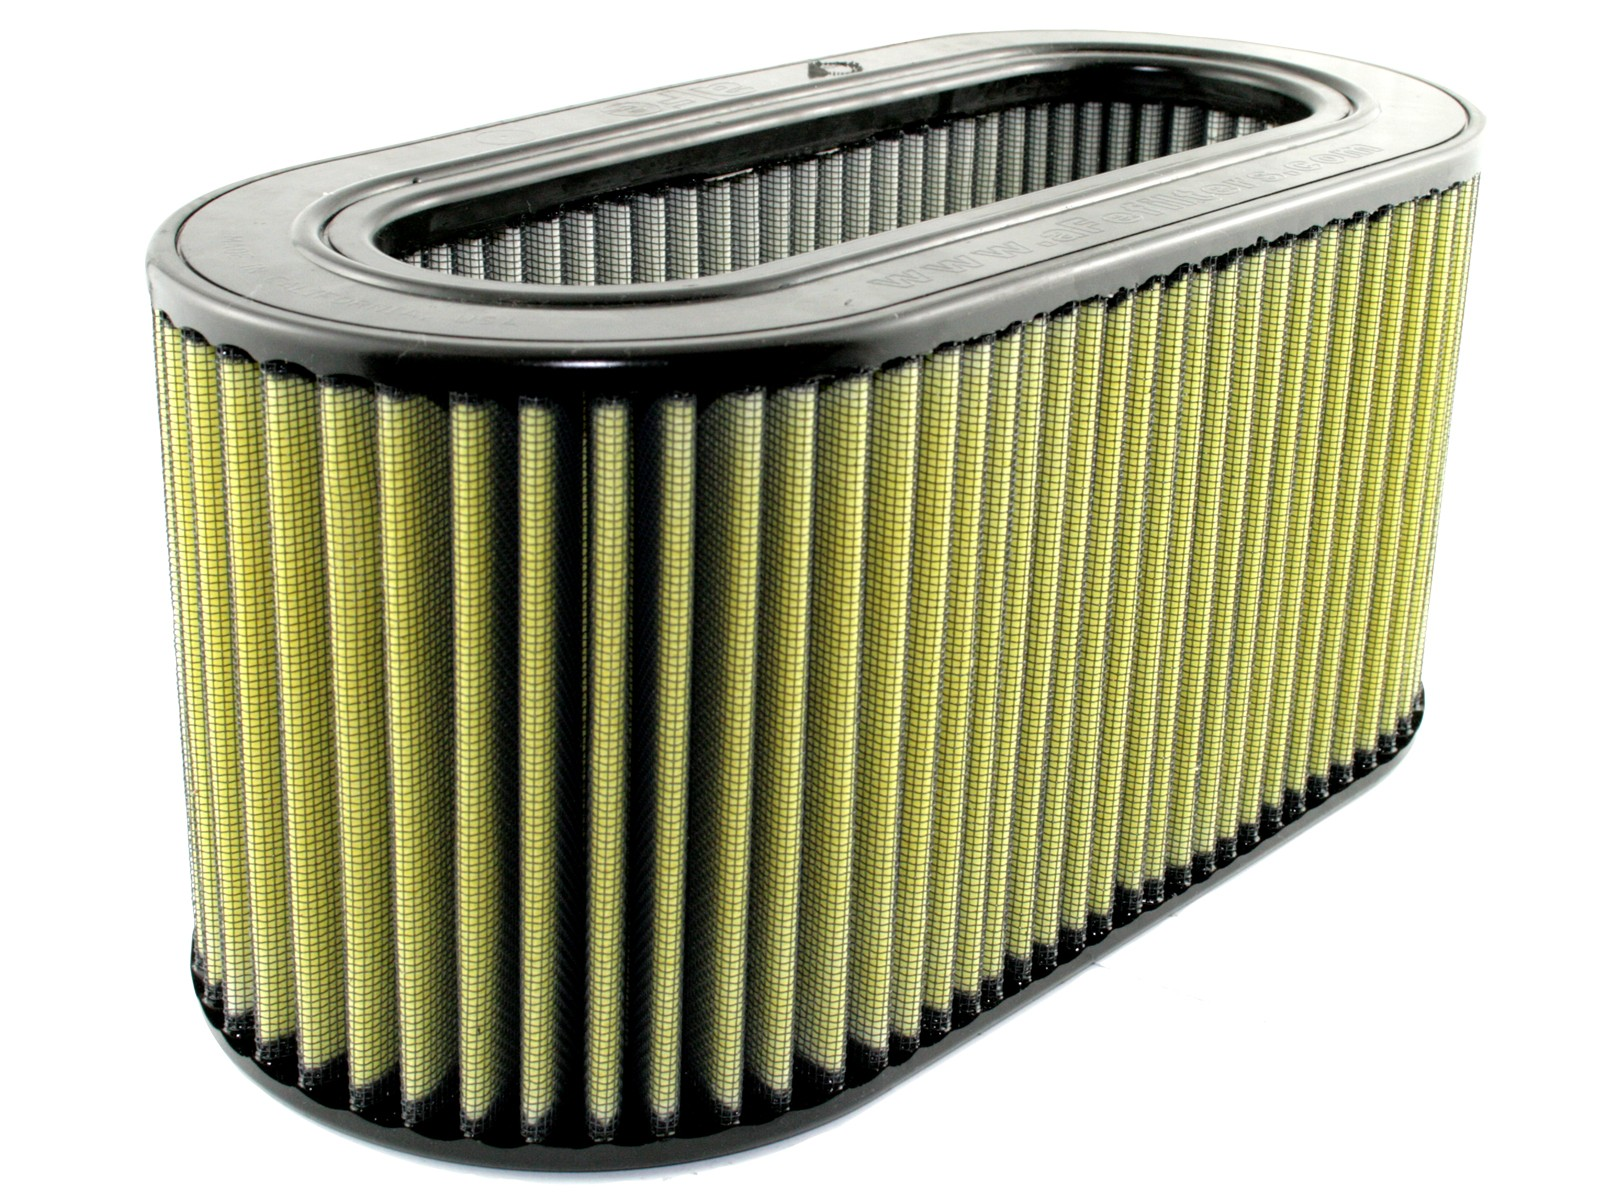 aFe POWER 71-10012 Magnum FLOW Pro GUARD7 Air Filter